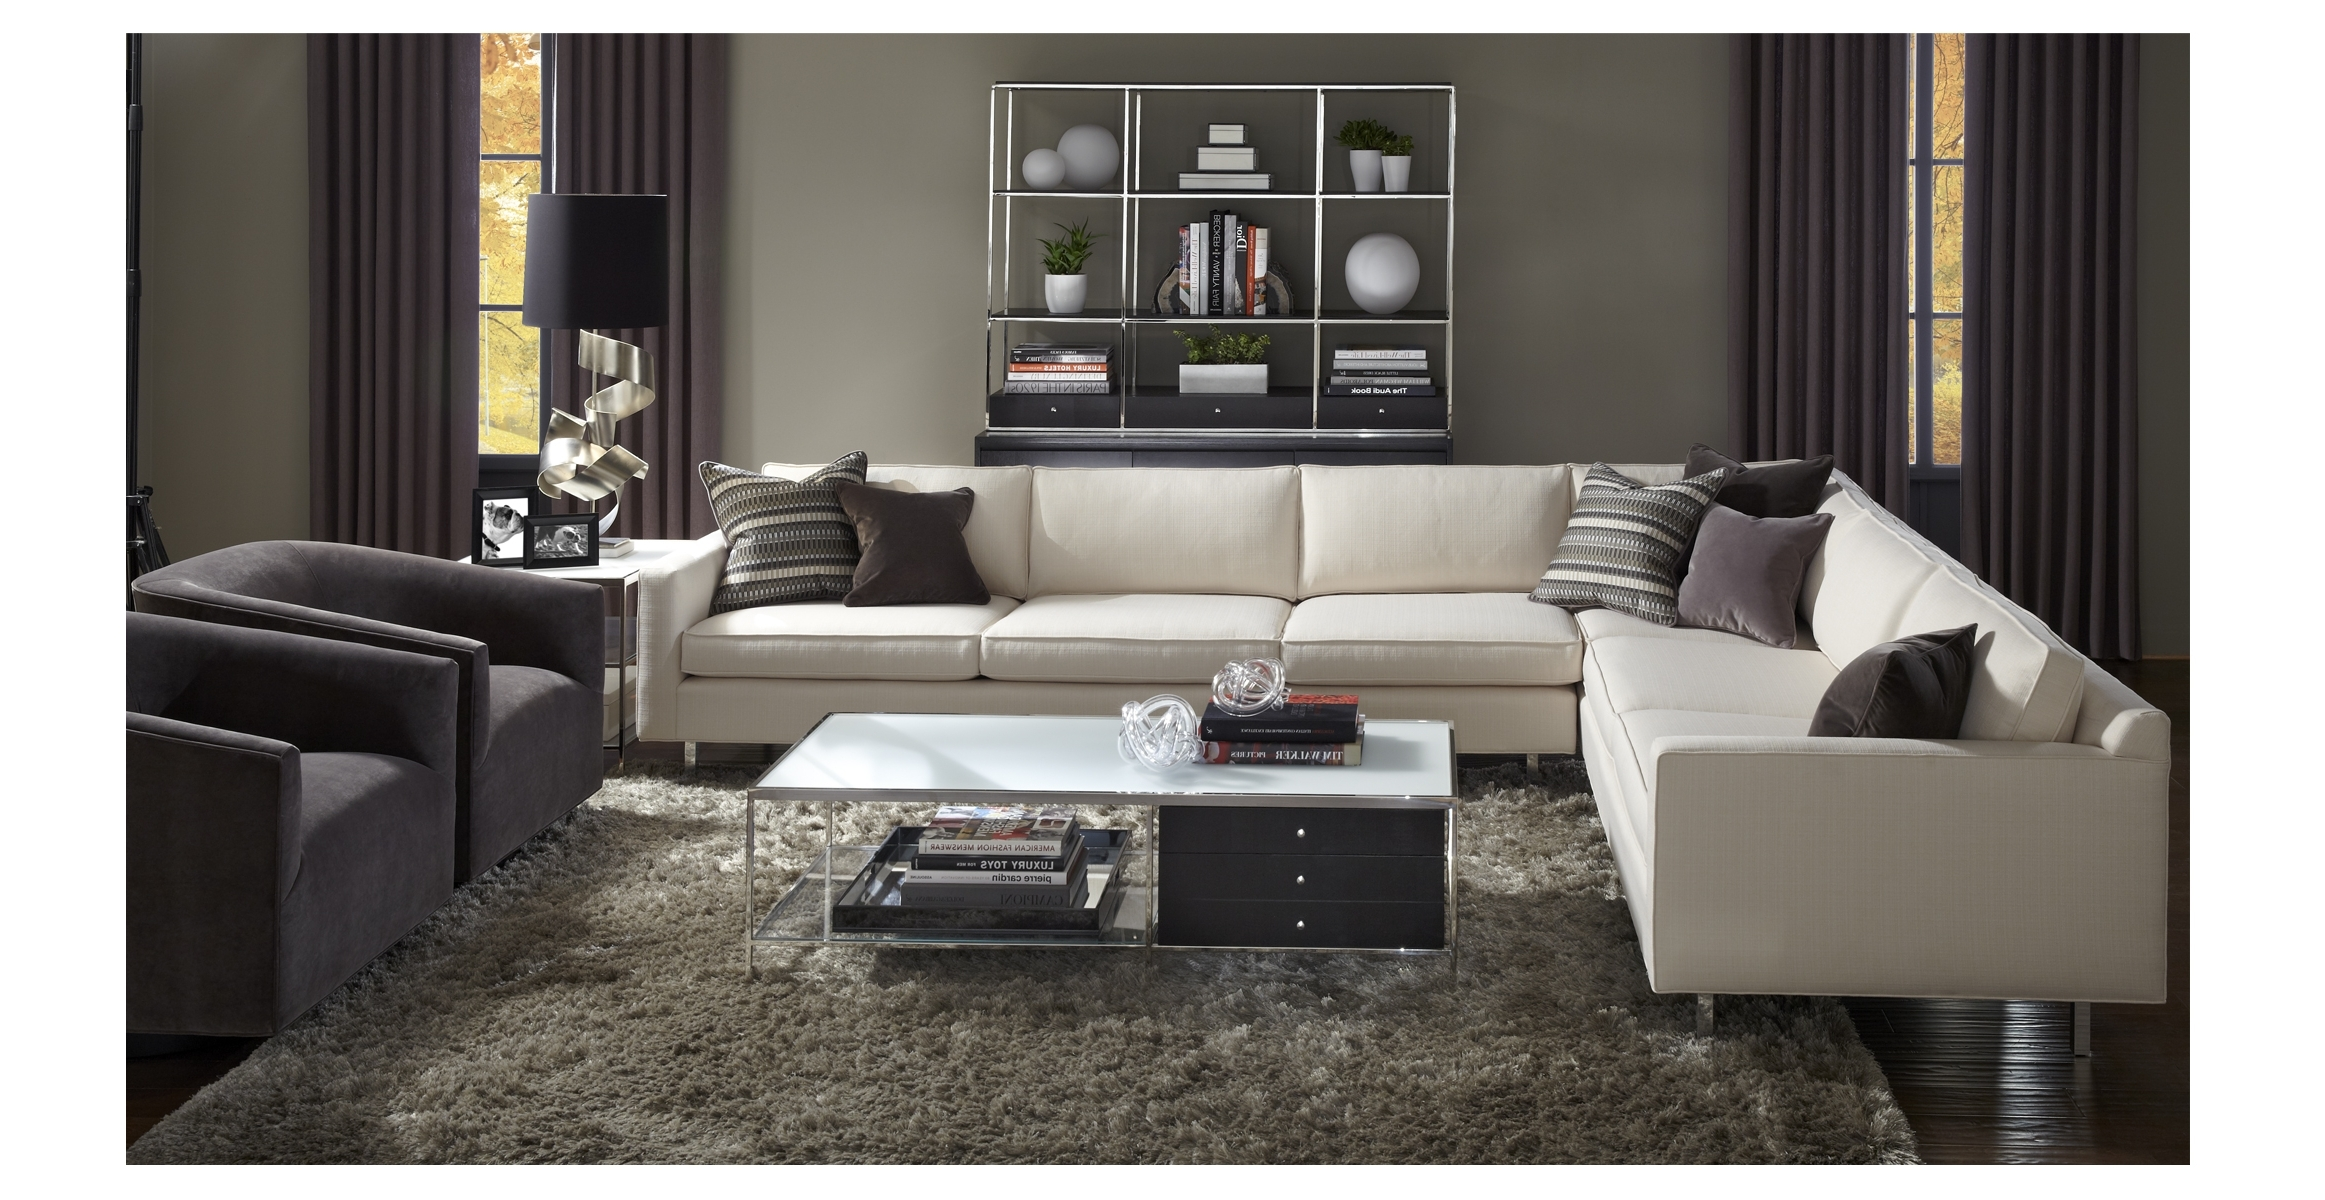 Best And Newest Best Mitchell Gold Sectional Sofa 80 Contemporary Sofa Inspiration With Regard To Gold Sectional Sofas (View 4 of 20)